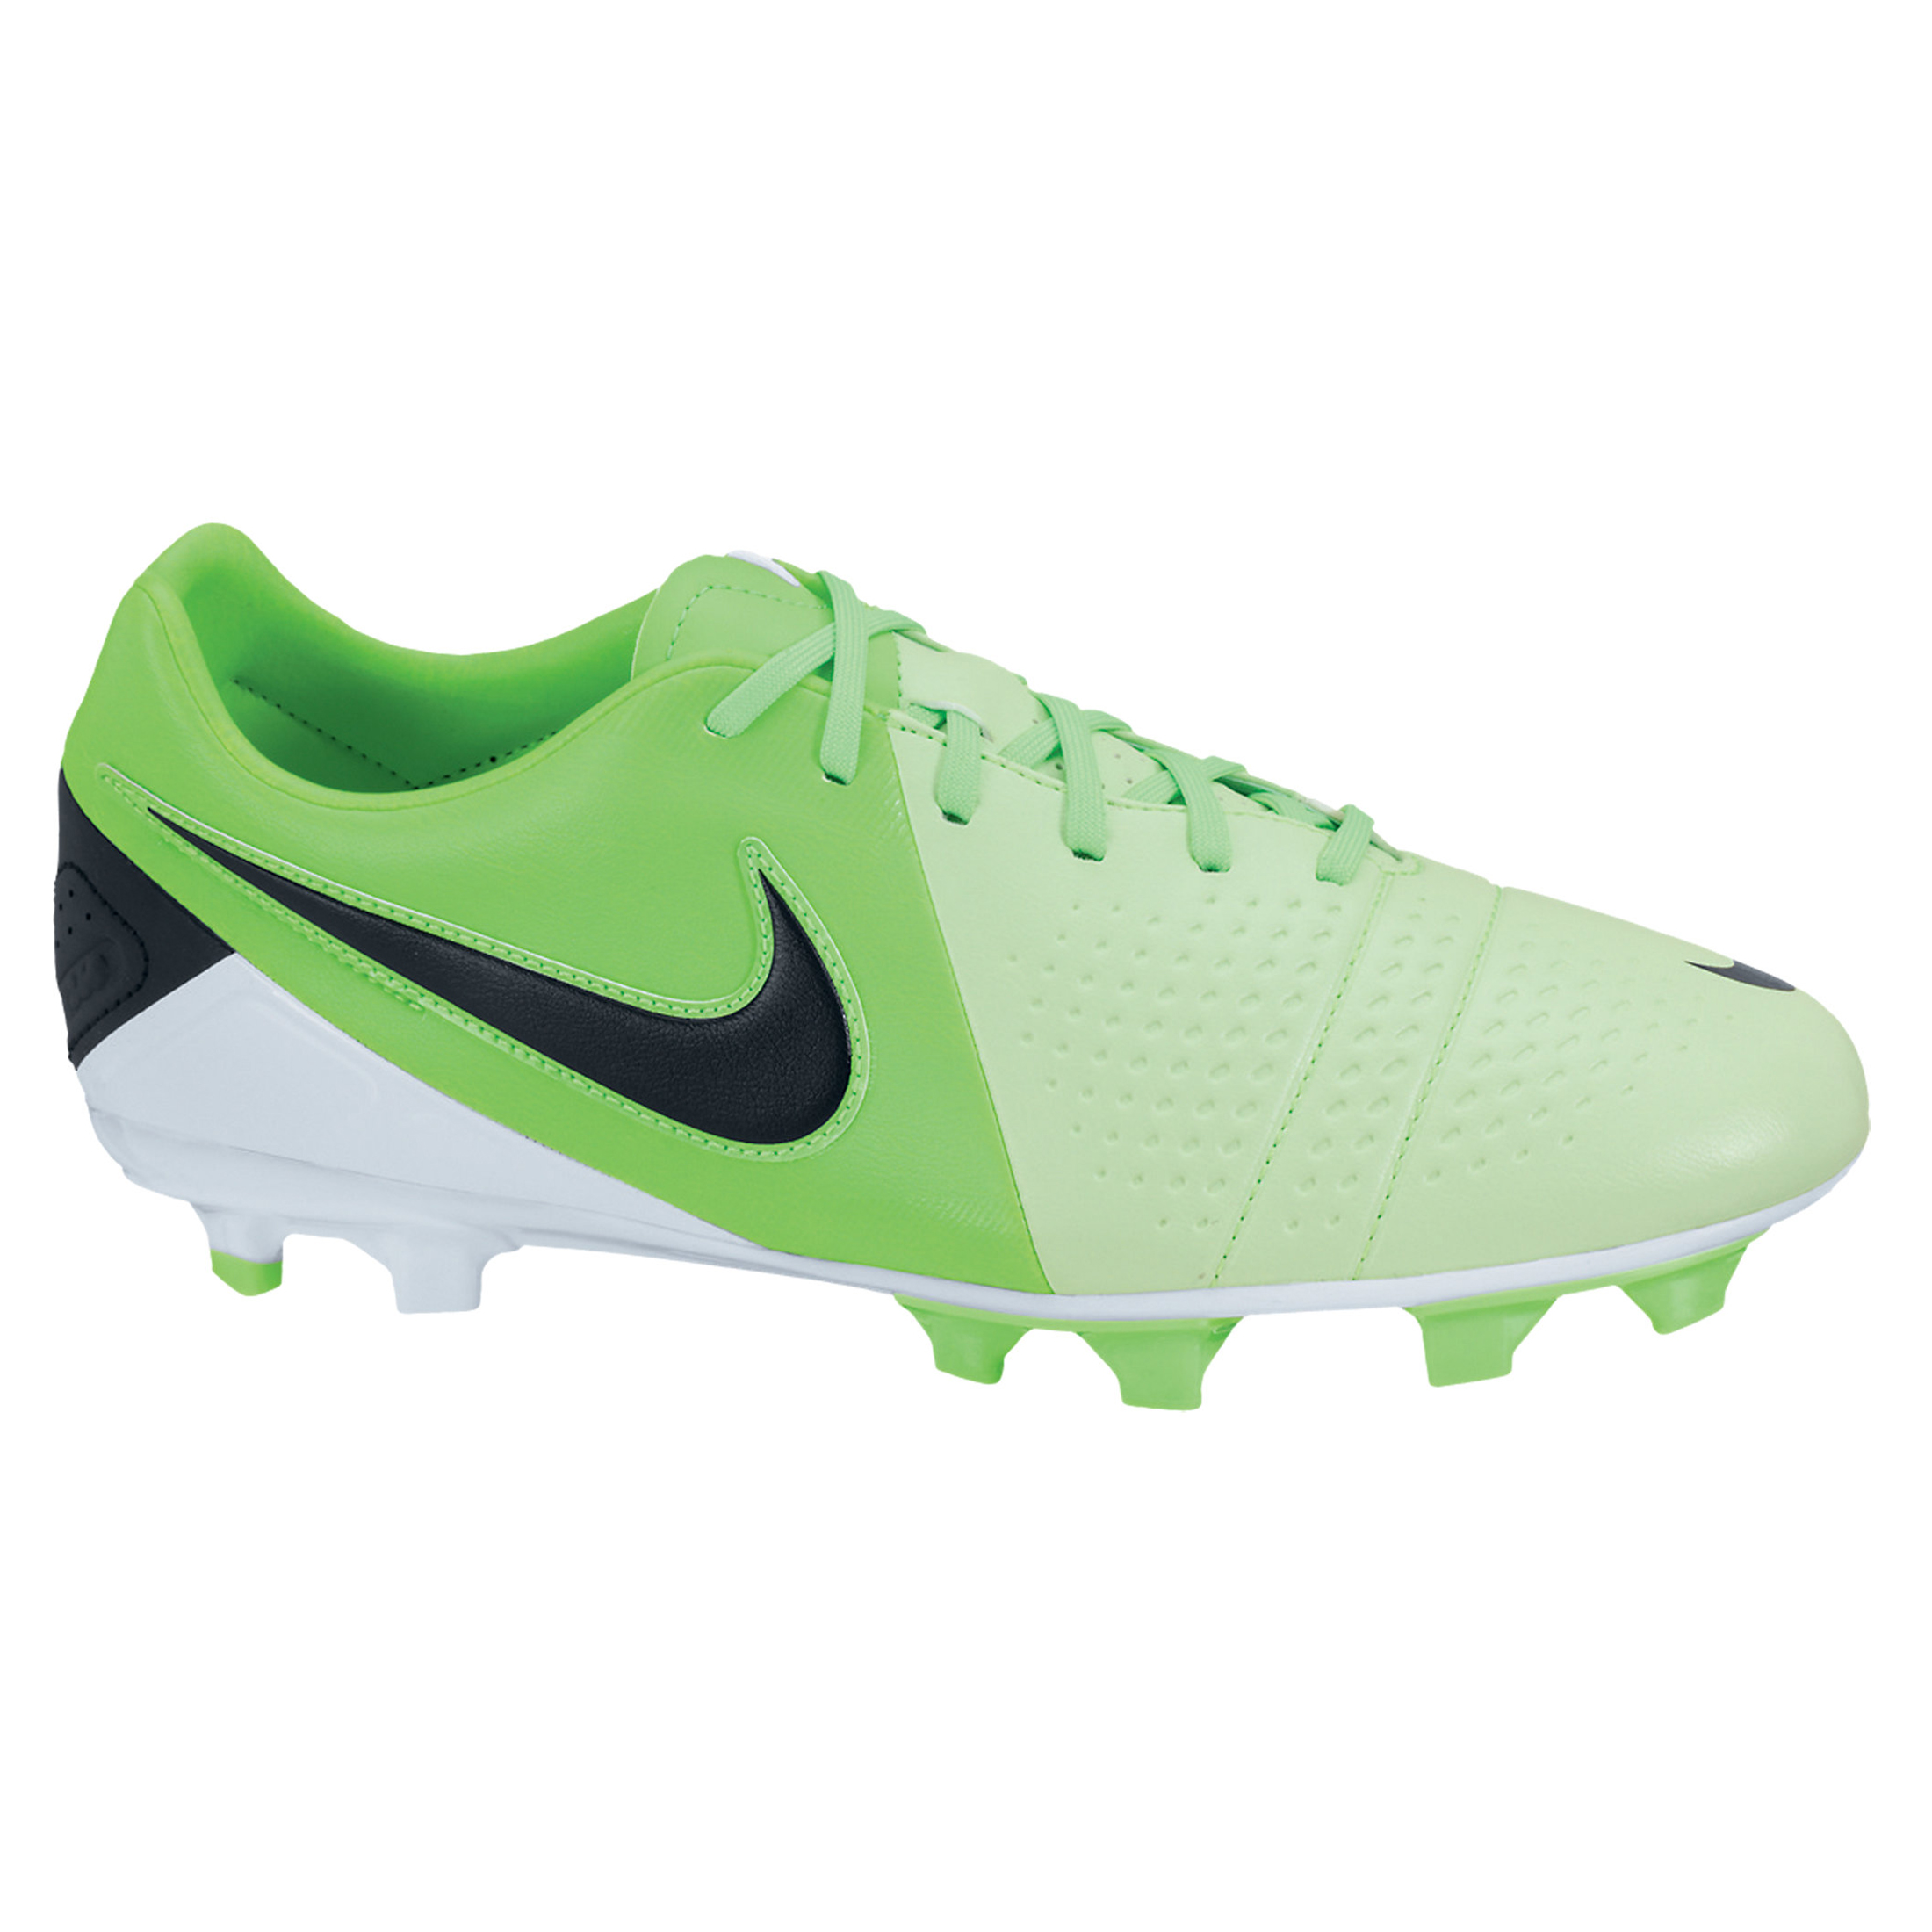 Nike CTR360 Libretto III Firm Ground Football Boots - Fresh Mint/Black/Neo Lime